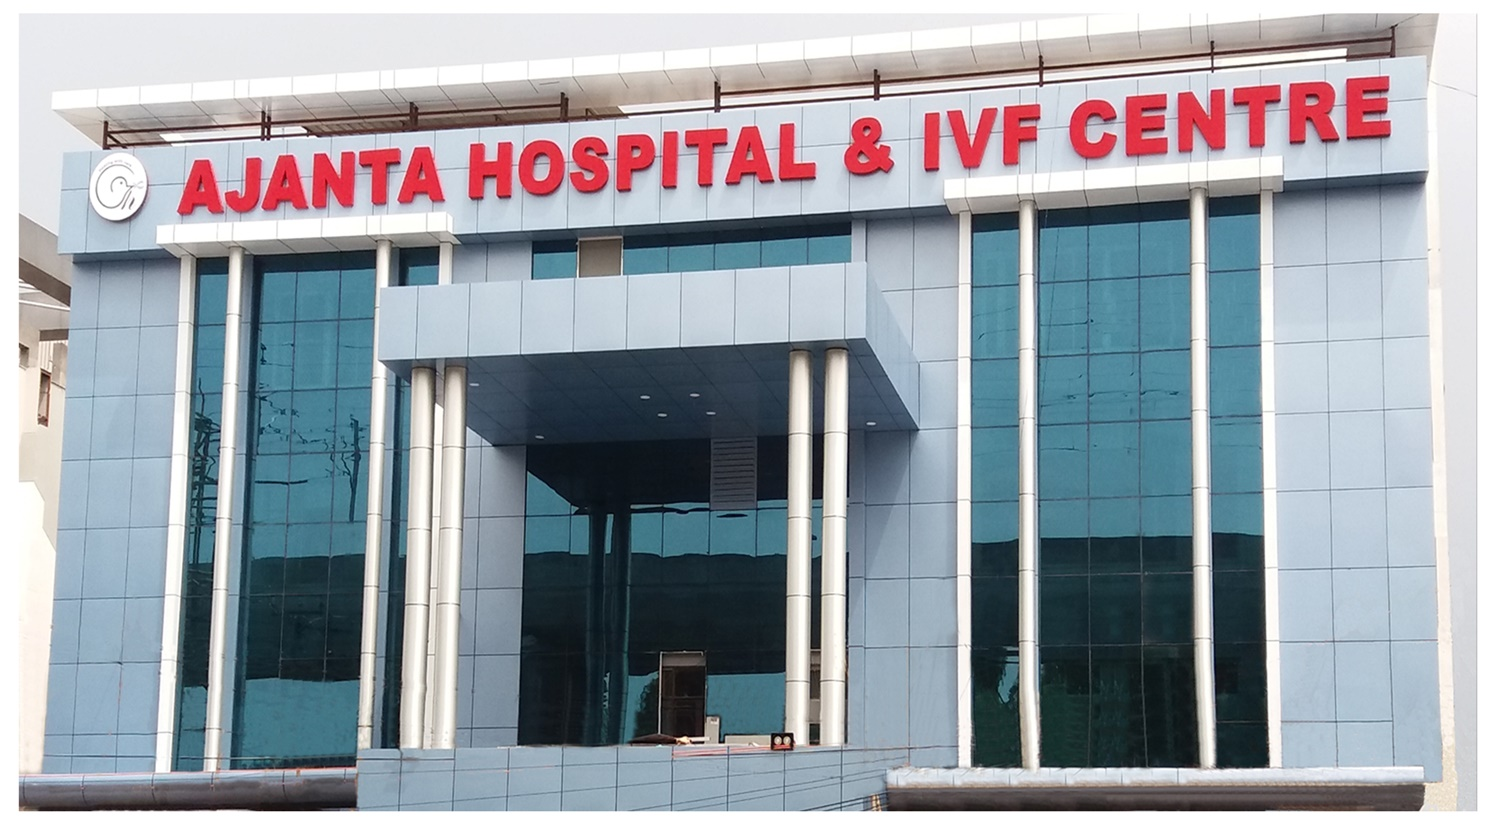 Ajanta Hospital and Ivf Centre - Lucknow Image